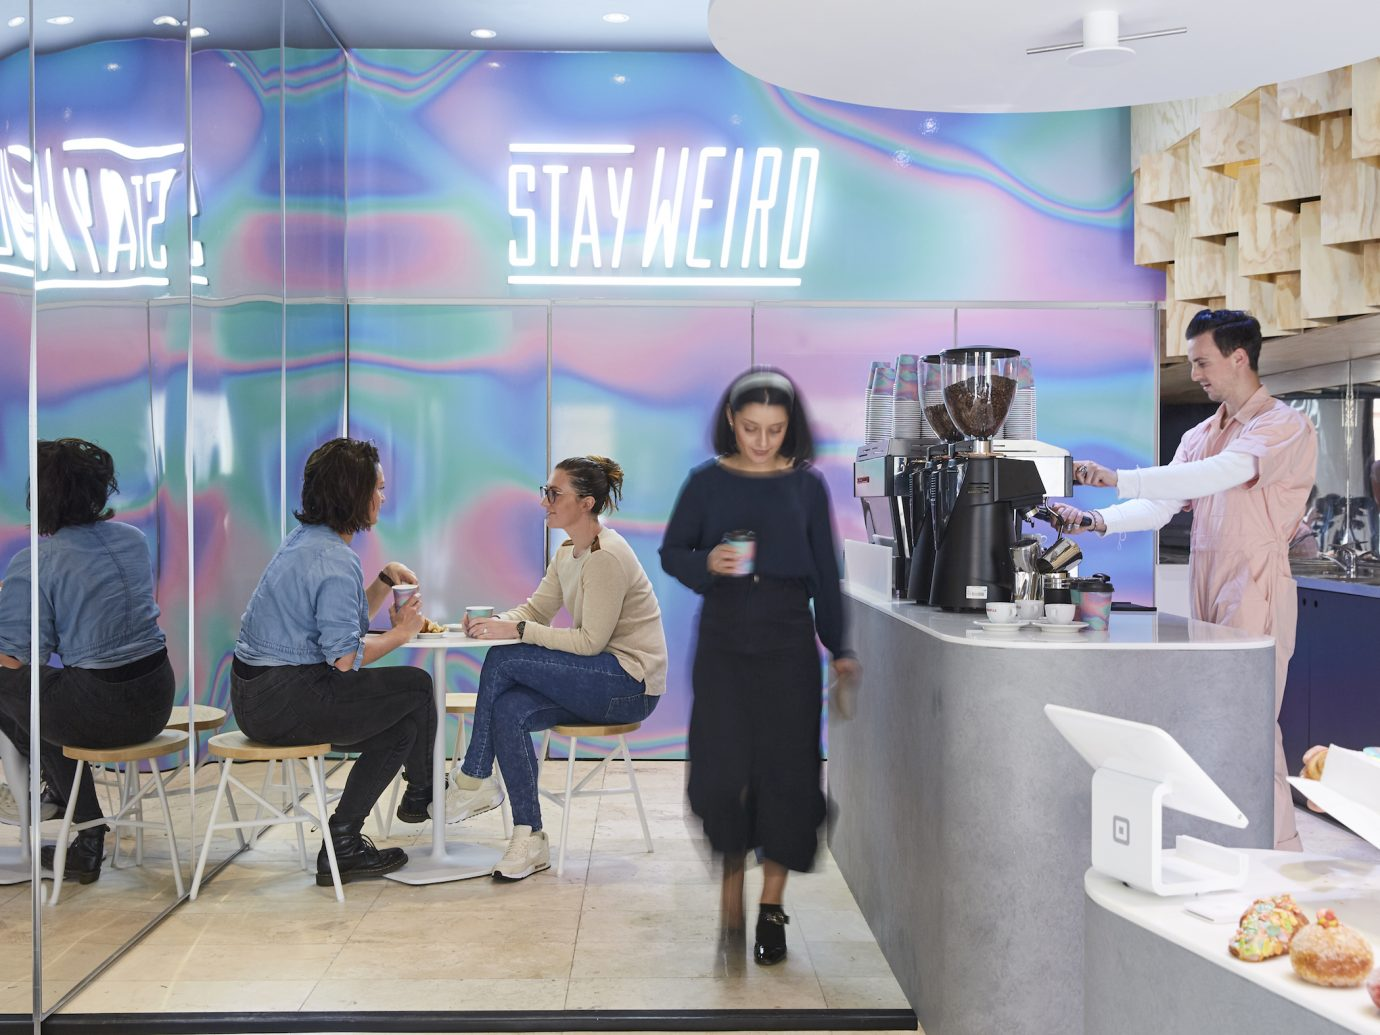 interior of shop with holographic walls at Weirdoughs, Melbourne, AUS